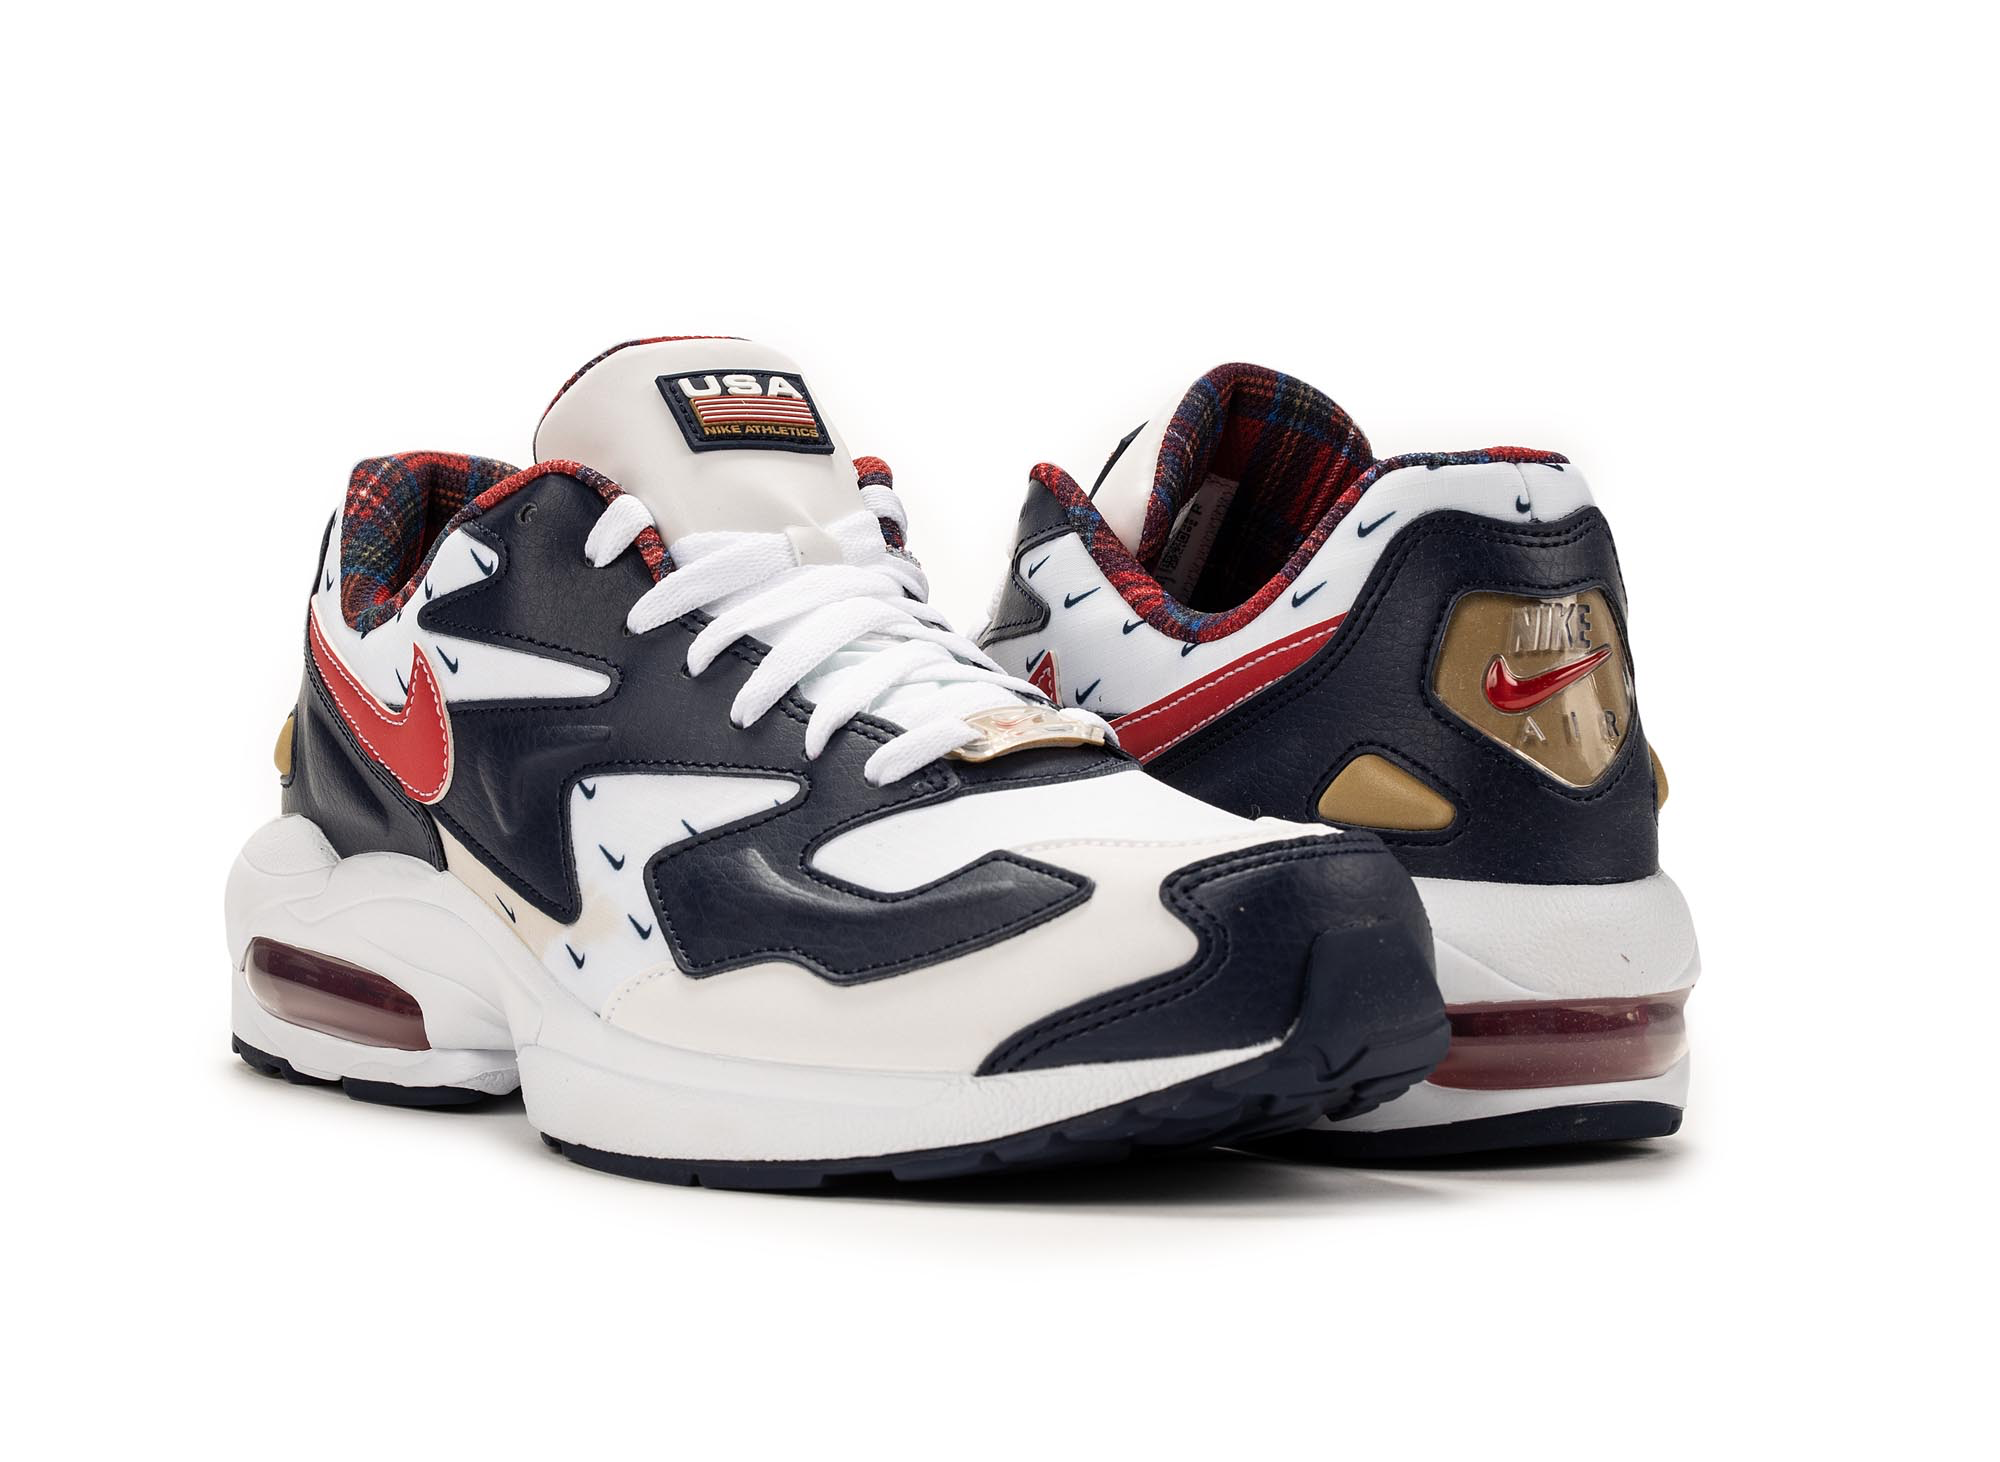 vente en magasin 48171 8f5ab Nike Air Max 2 Light 'USA' - Oneness Boutique